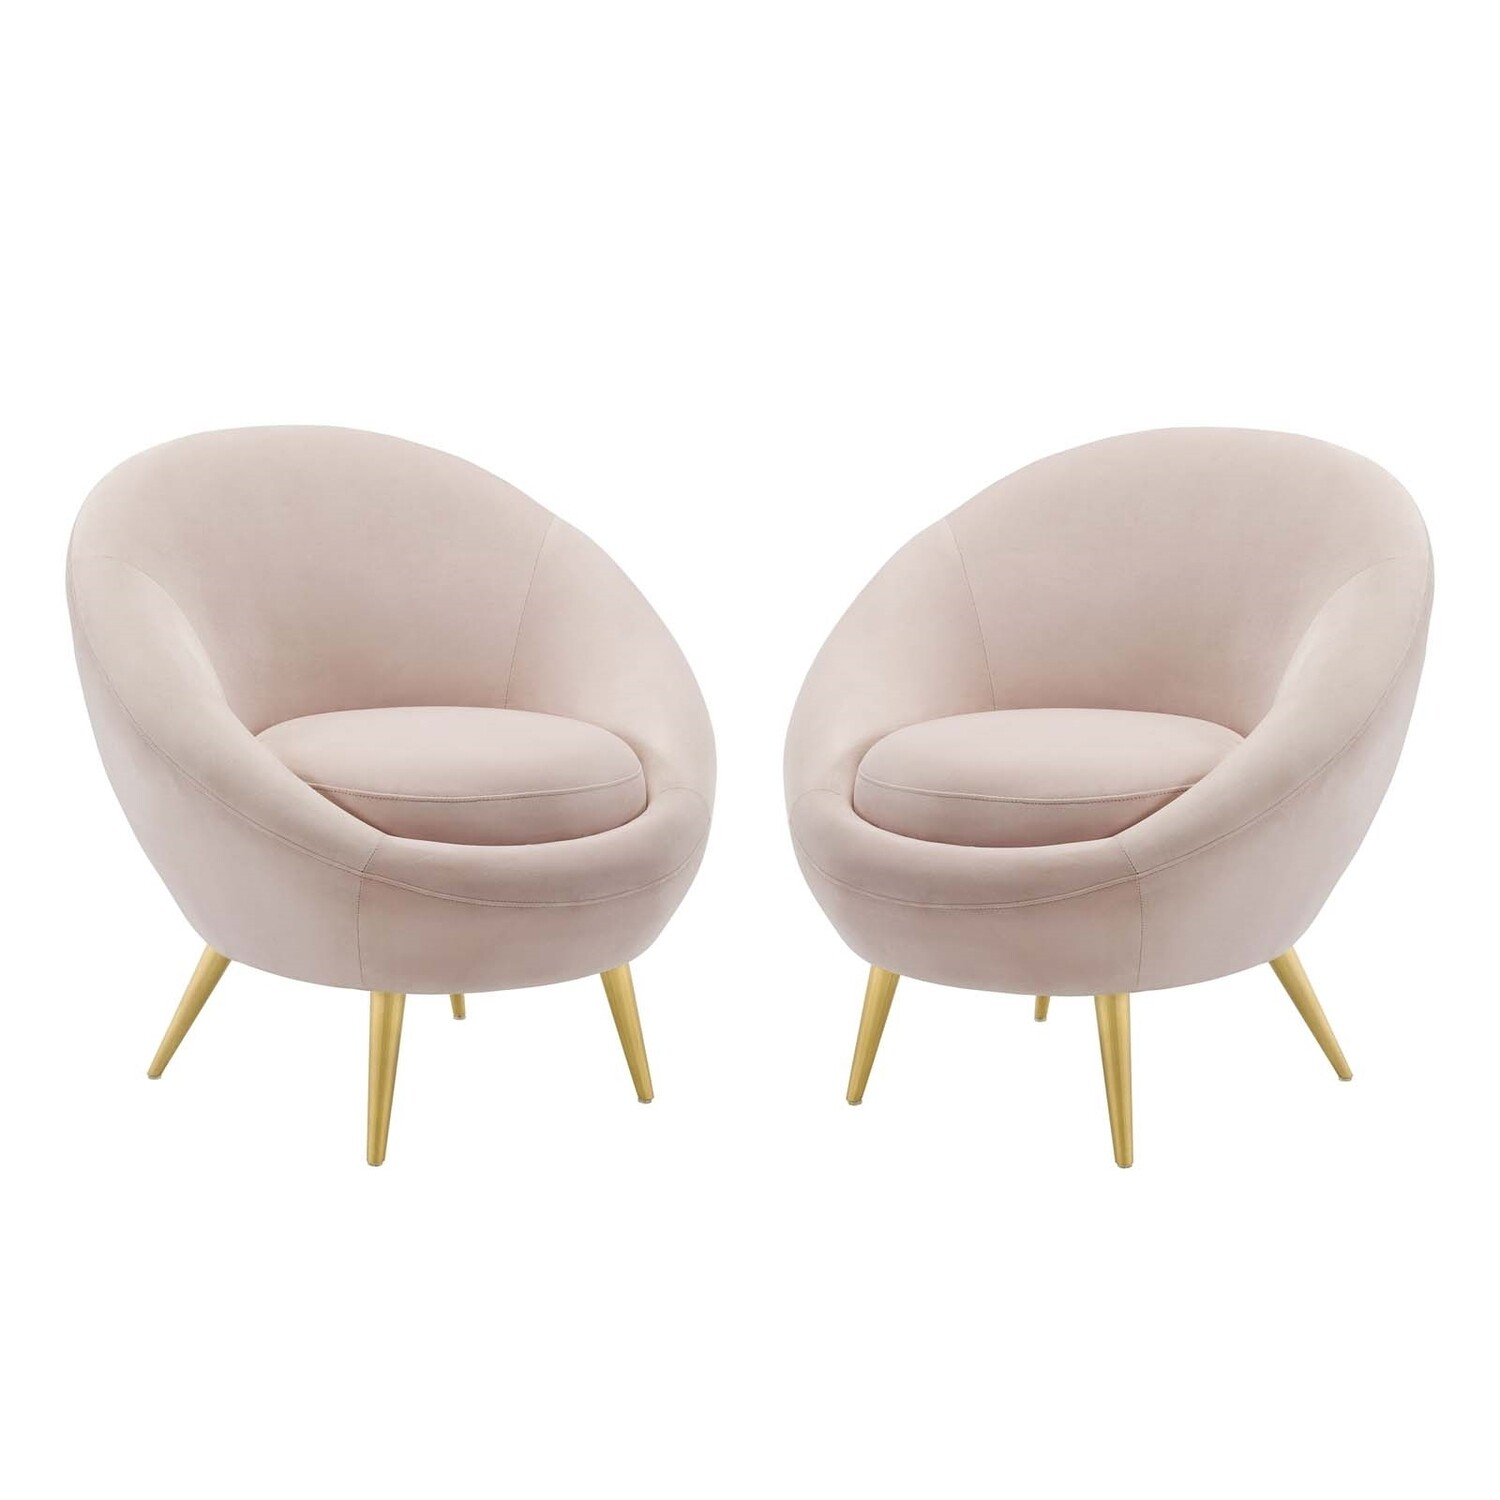 Cercus Lounge Chair |  Set of 2 | 2 Colors